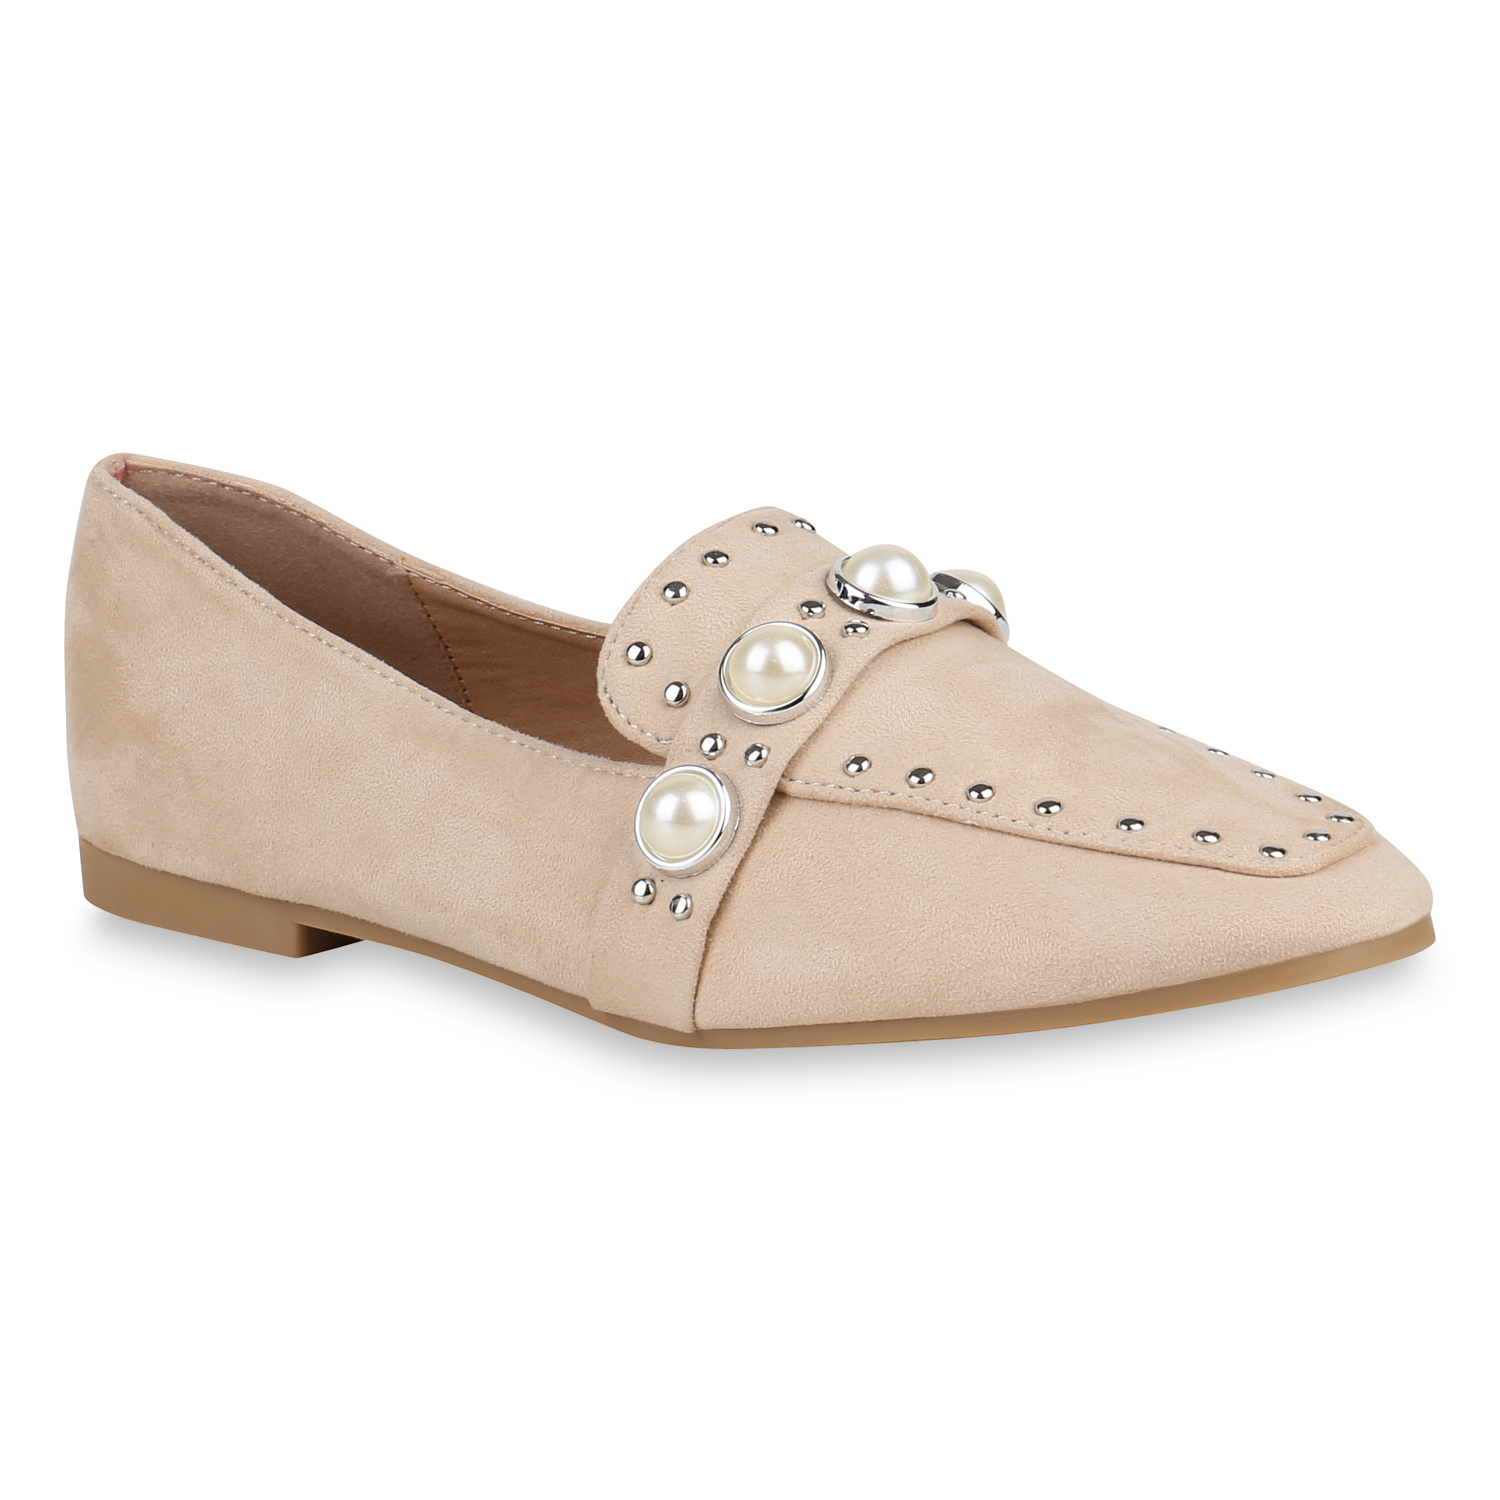 Damen Slippers Loafers - Creme